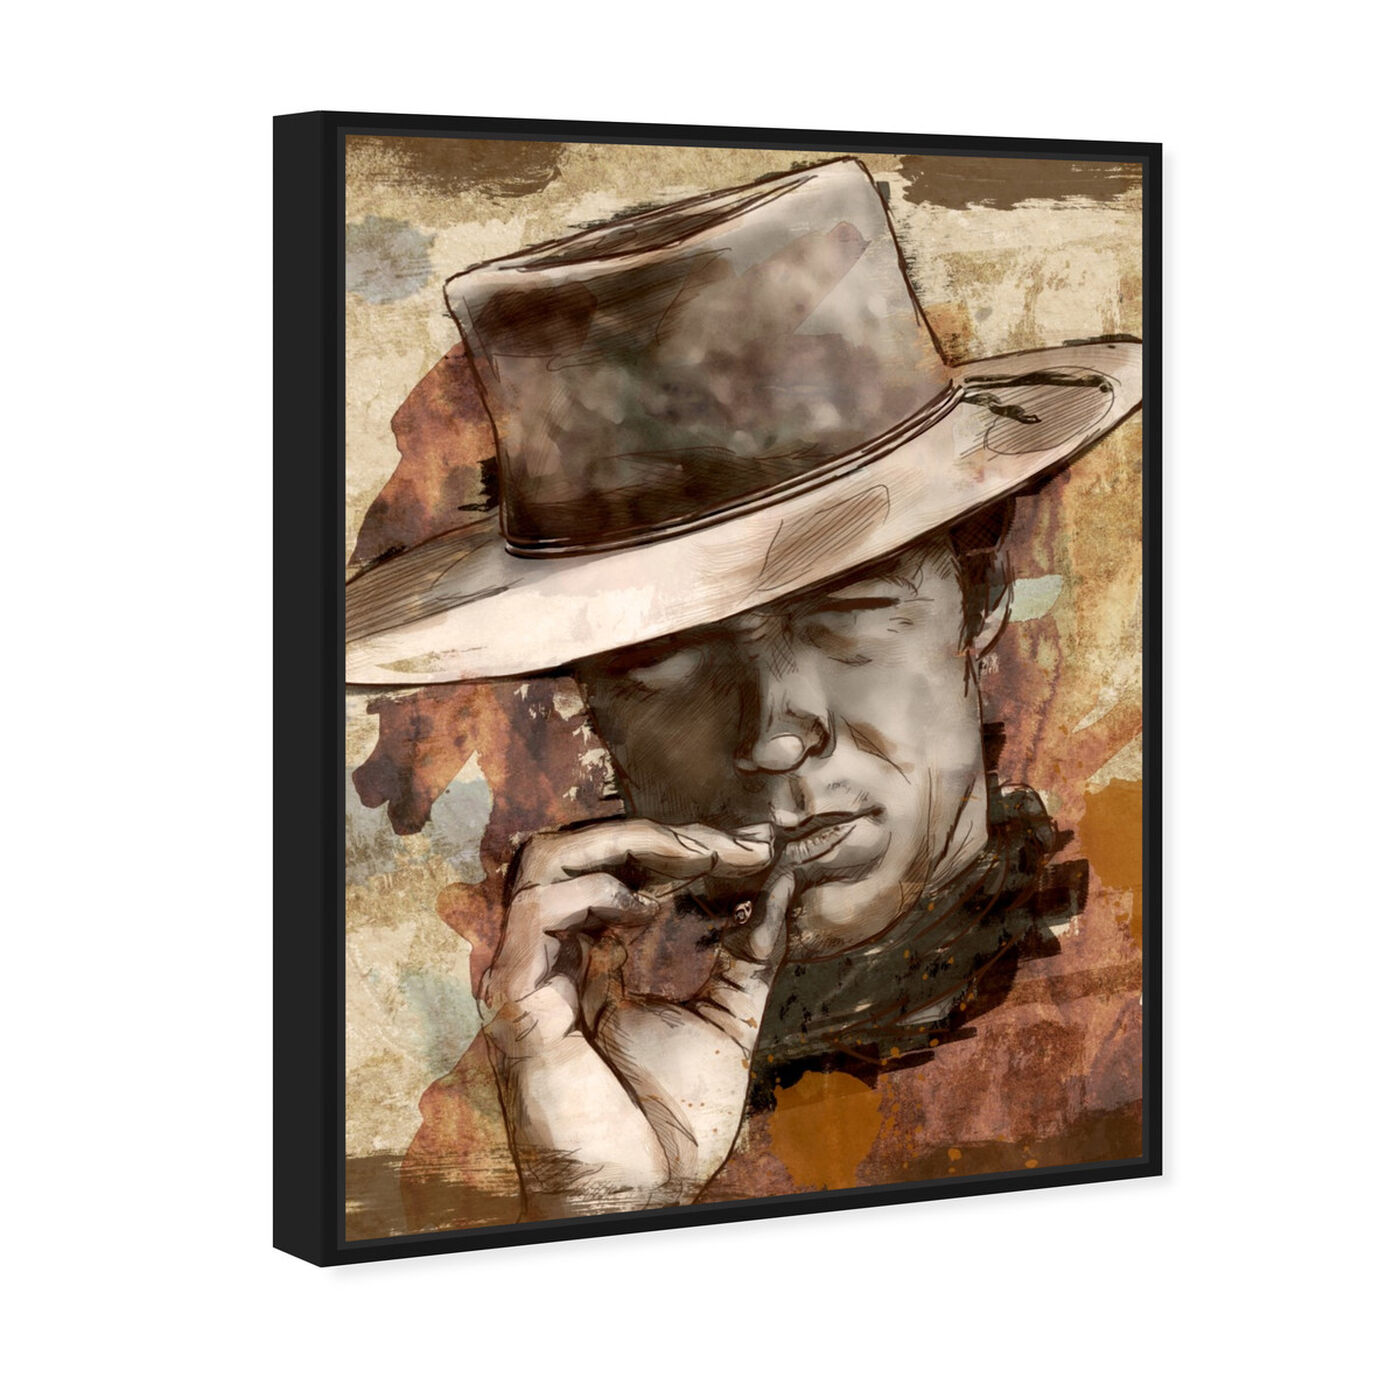 Angled view of Cowboy featuring people and portraits and professions art.